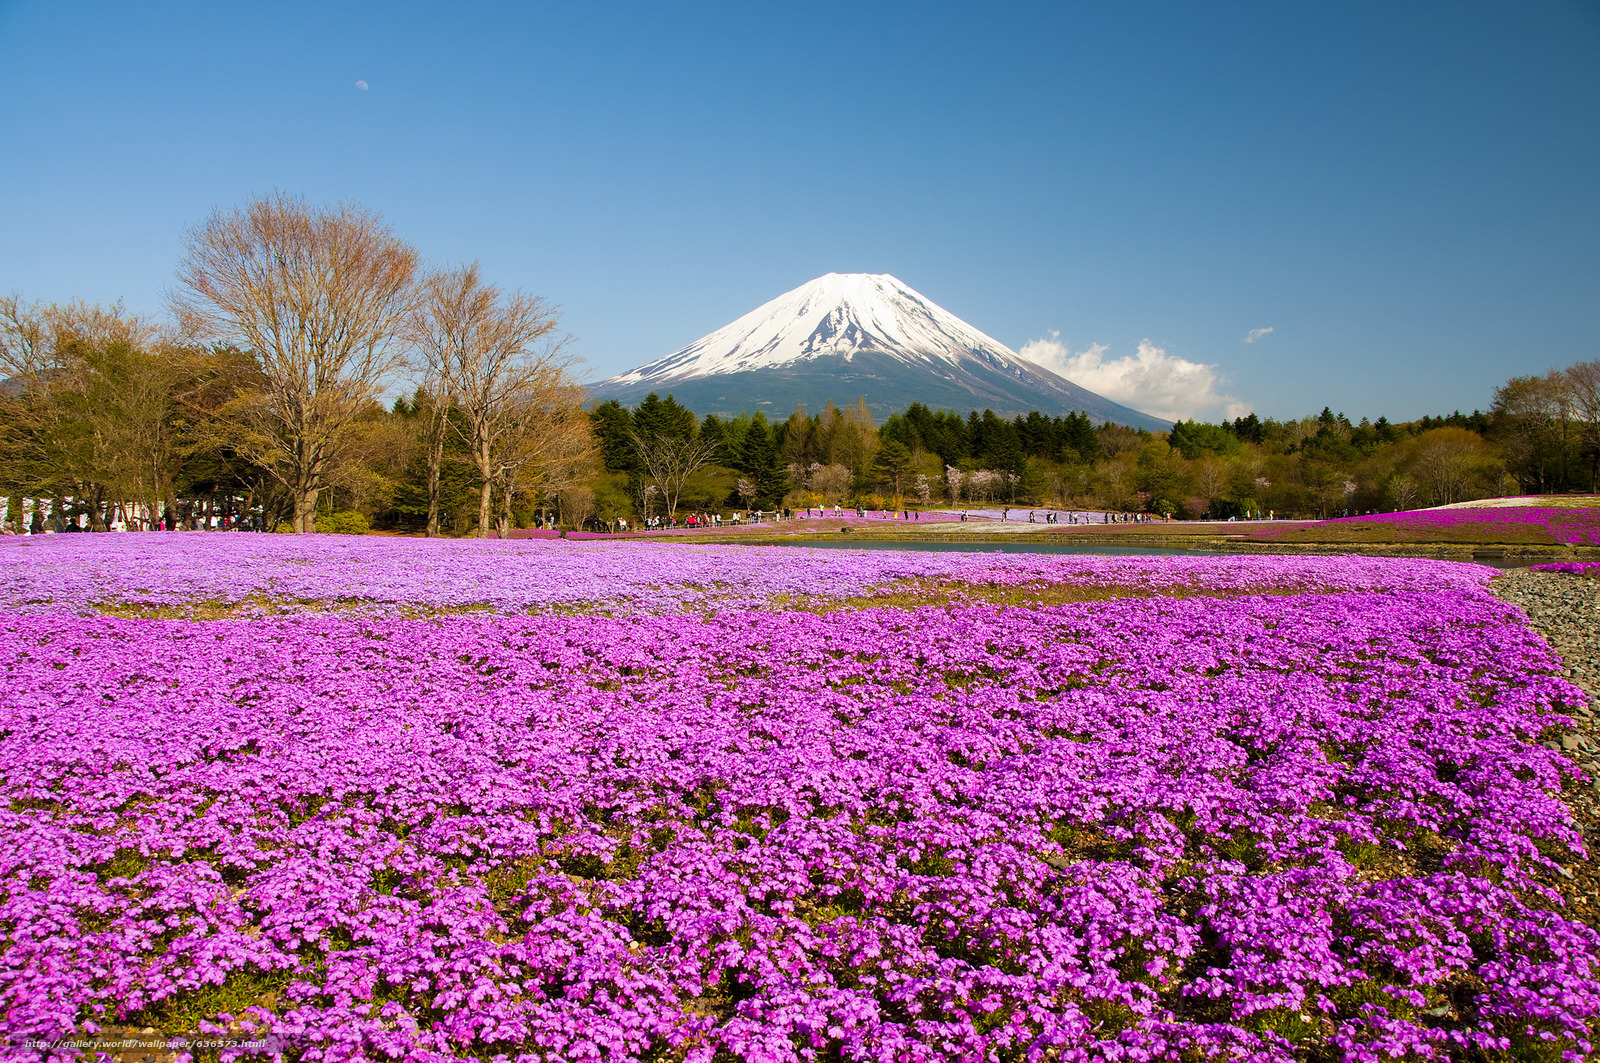 Download wallpaper Mount Fuji,  Located on the island of Honshu,  the highest mountain in Japan,  phlox Festival free desktop wallpaper in the resolution 2048x1360 — picture №636573